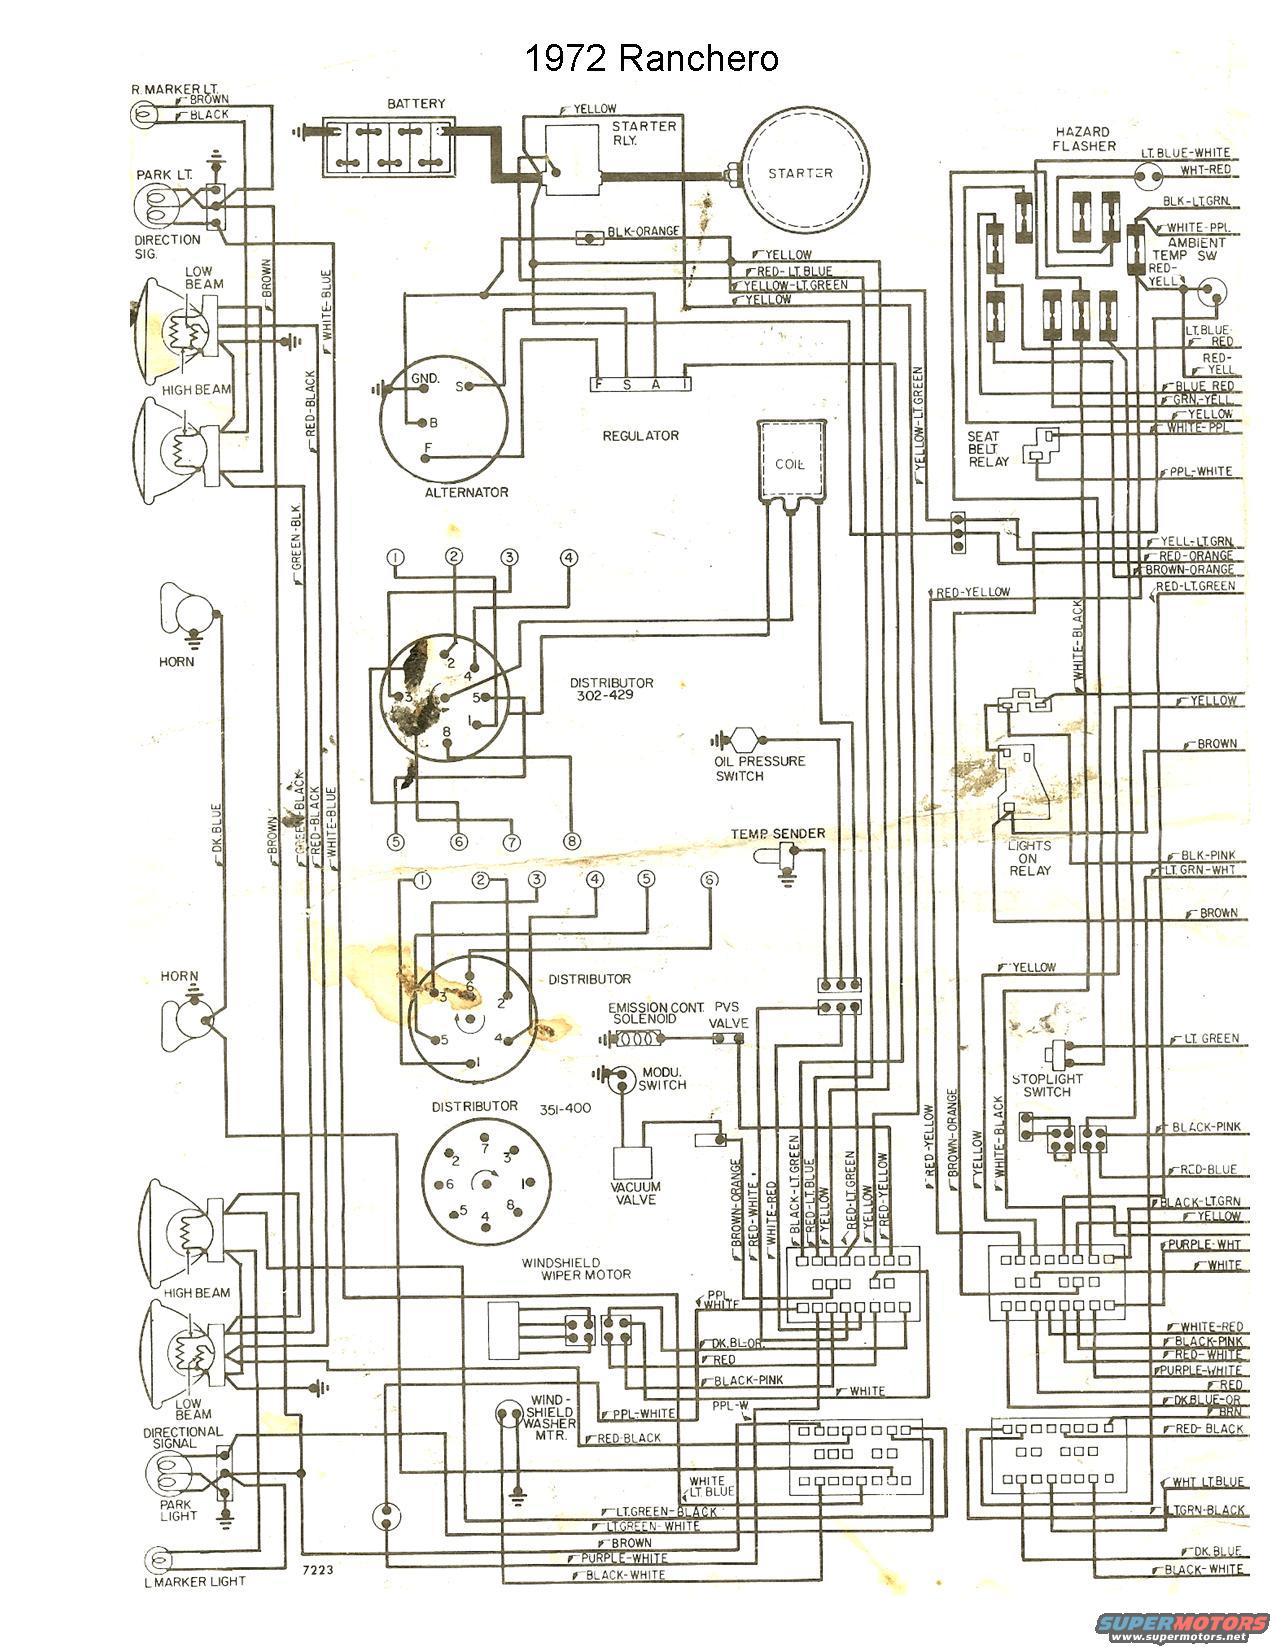 1964 Ford Ranchero Wiring Diagram Good 1st Futura Third Level Rh 10 4 14 Jacobwinterstein Com Master Tow Falcon Tail Light